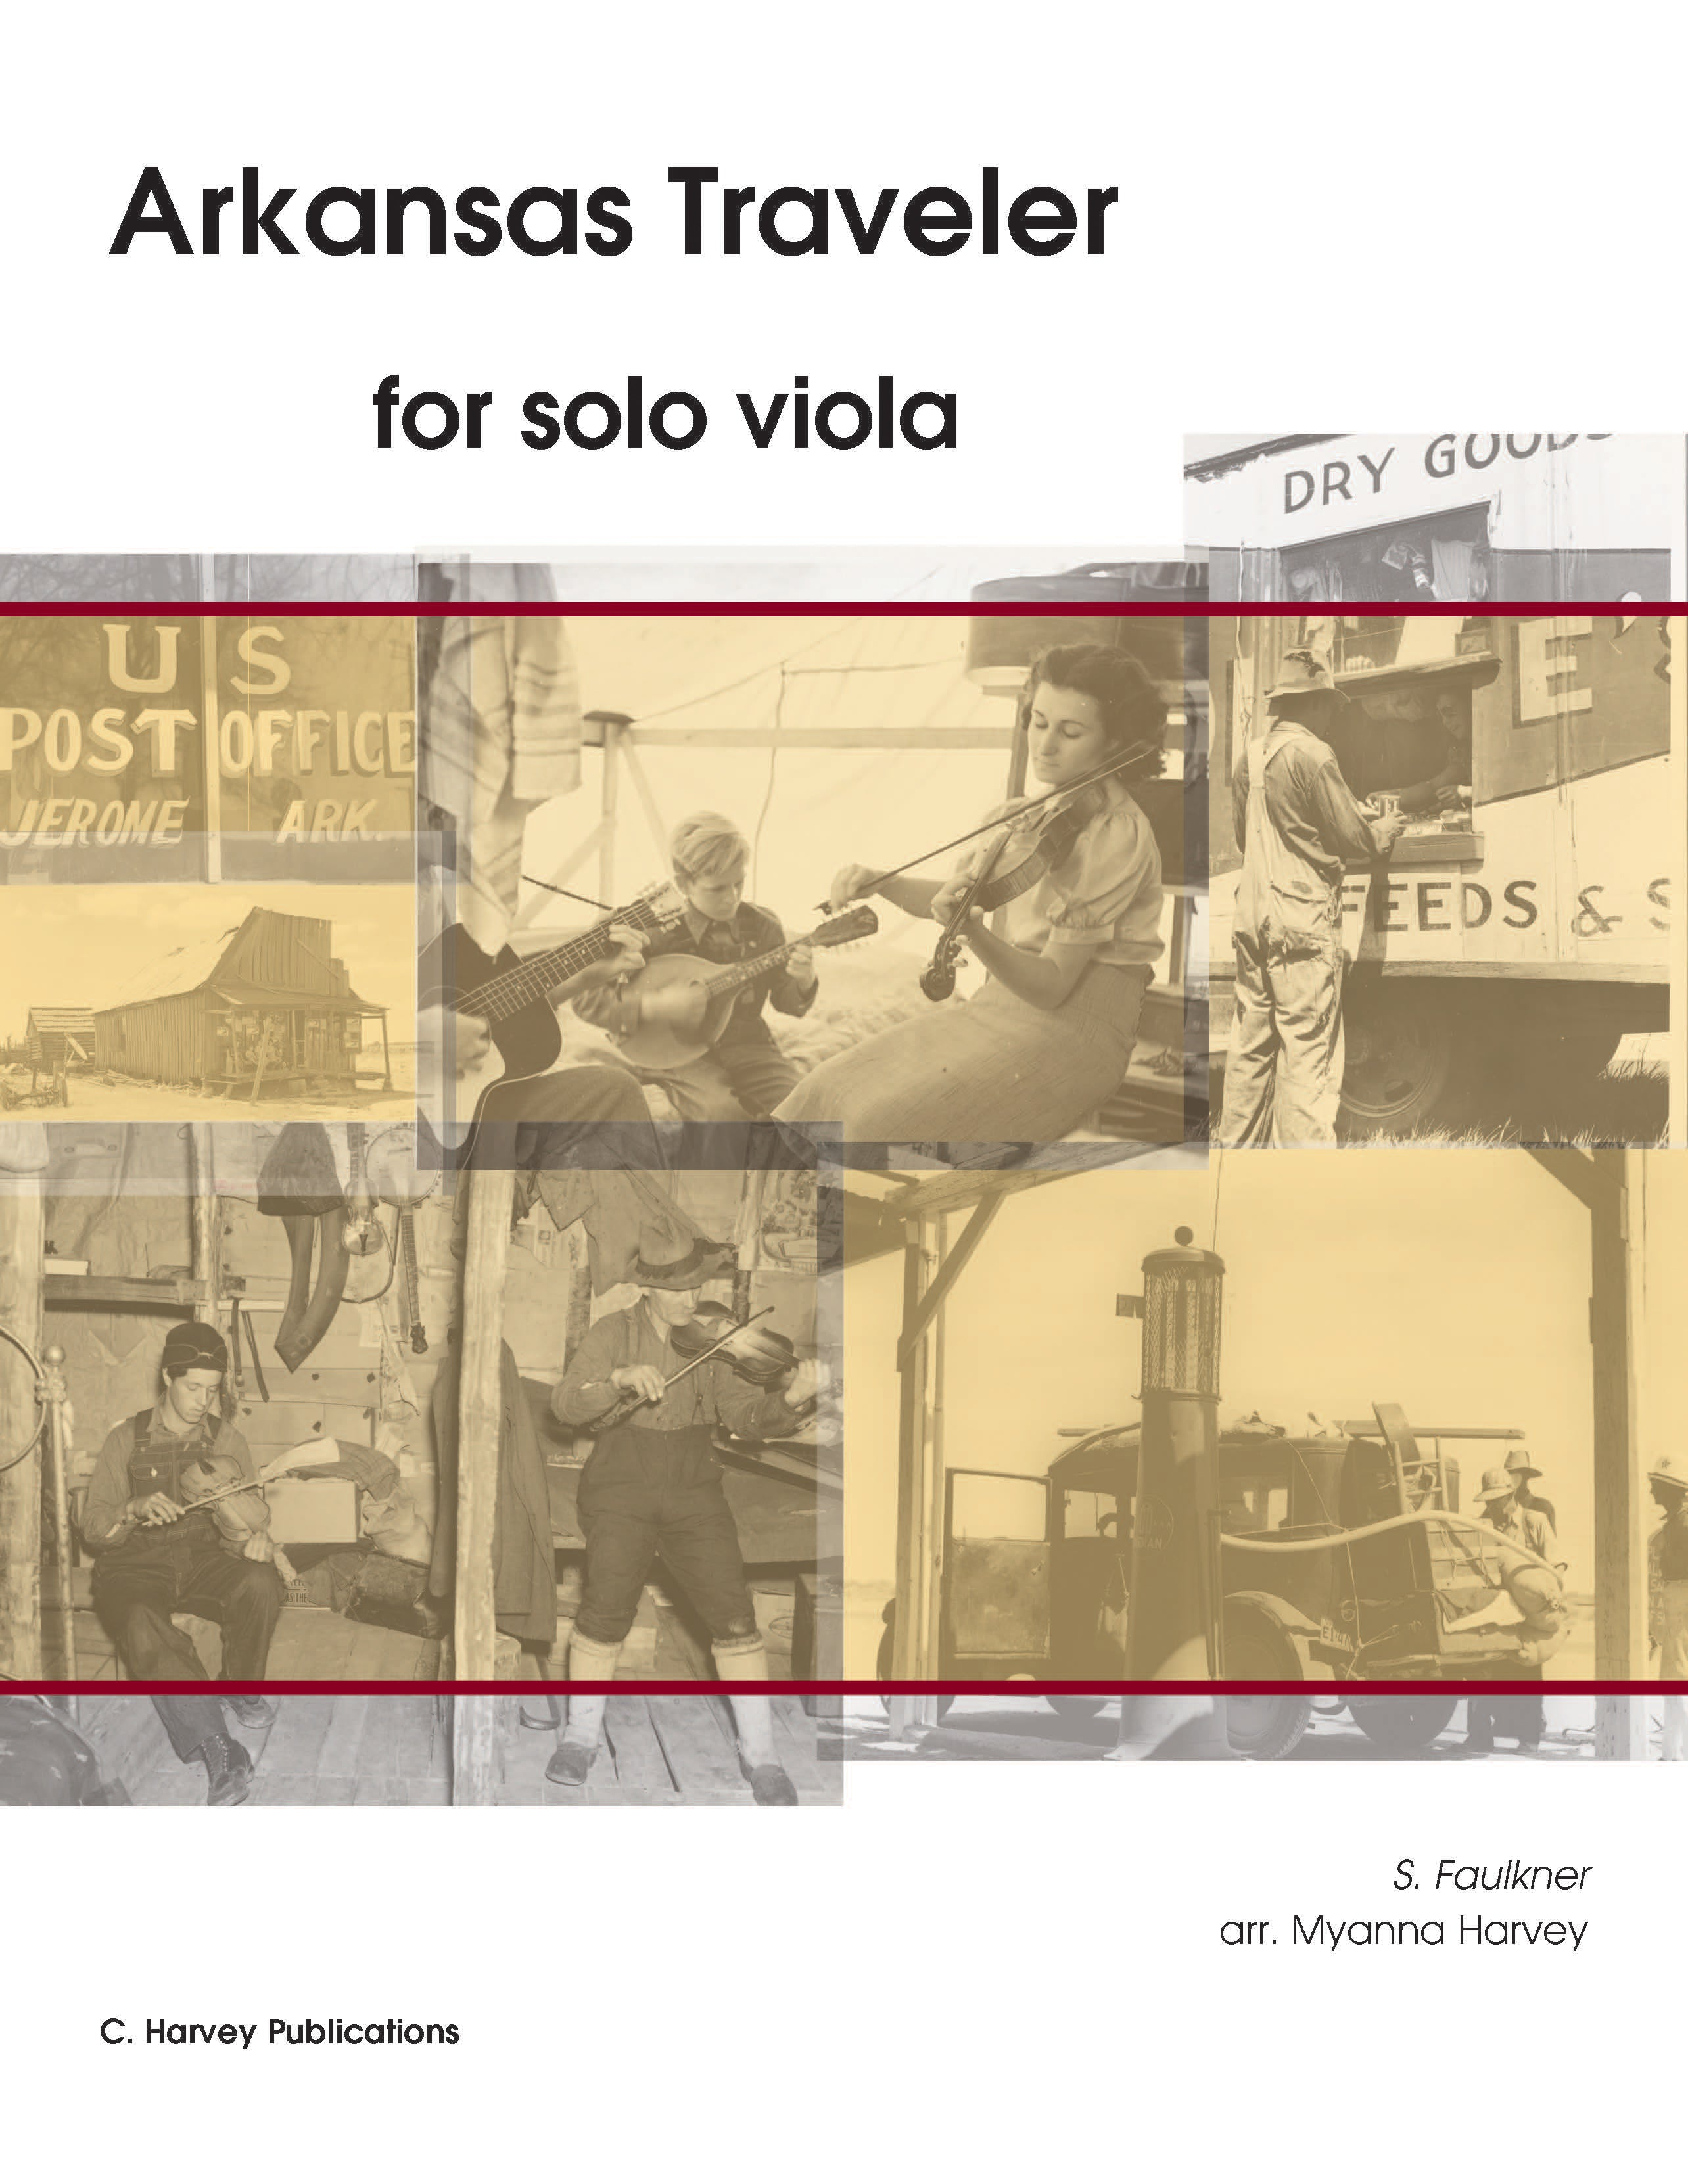 Arkansas Traveler for Solo Viola - Variations on an Unaccompanied Fiddle Tune - PDF download